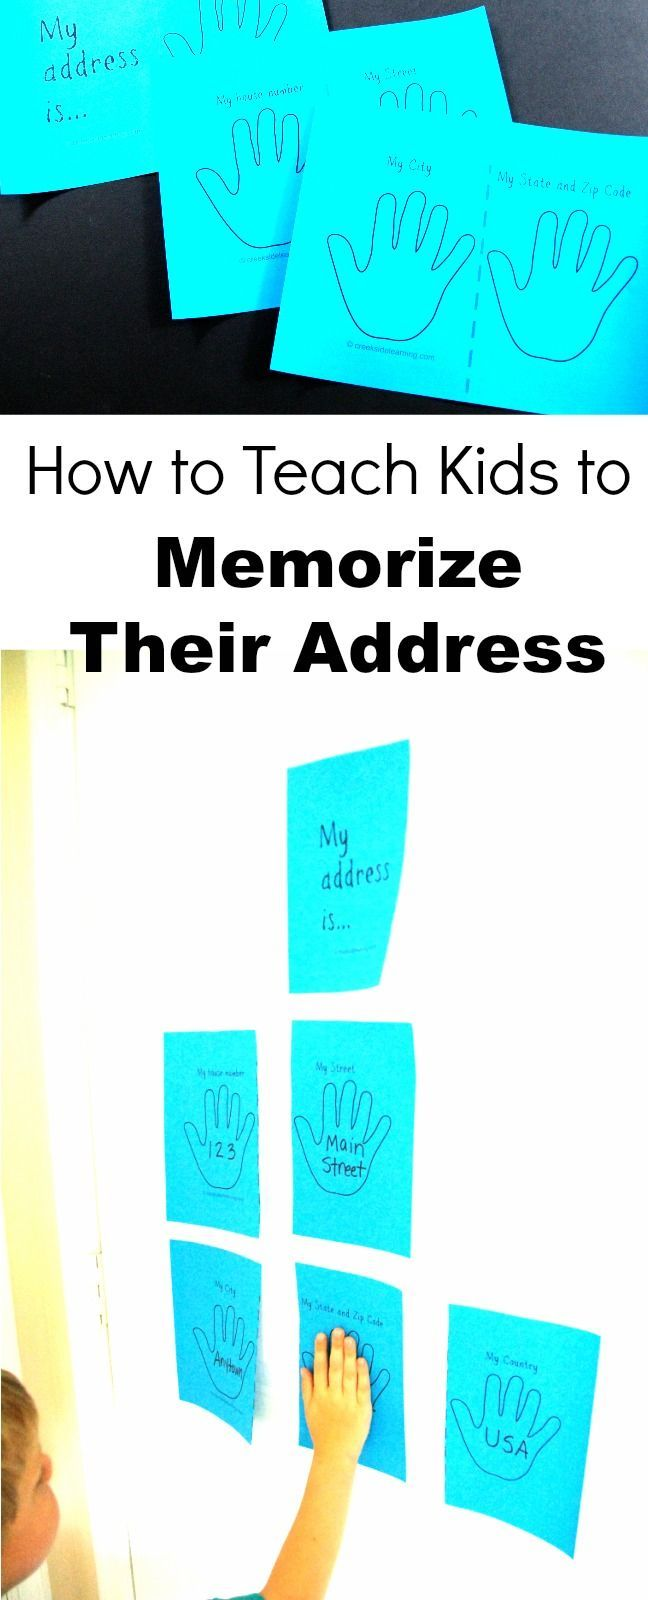 How to teach kids to memorize their address and phone number. Quick and easy learning activity for preschool, kindergarten and elementary school.